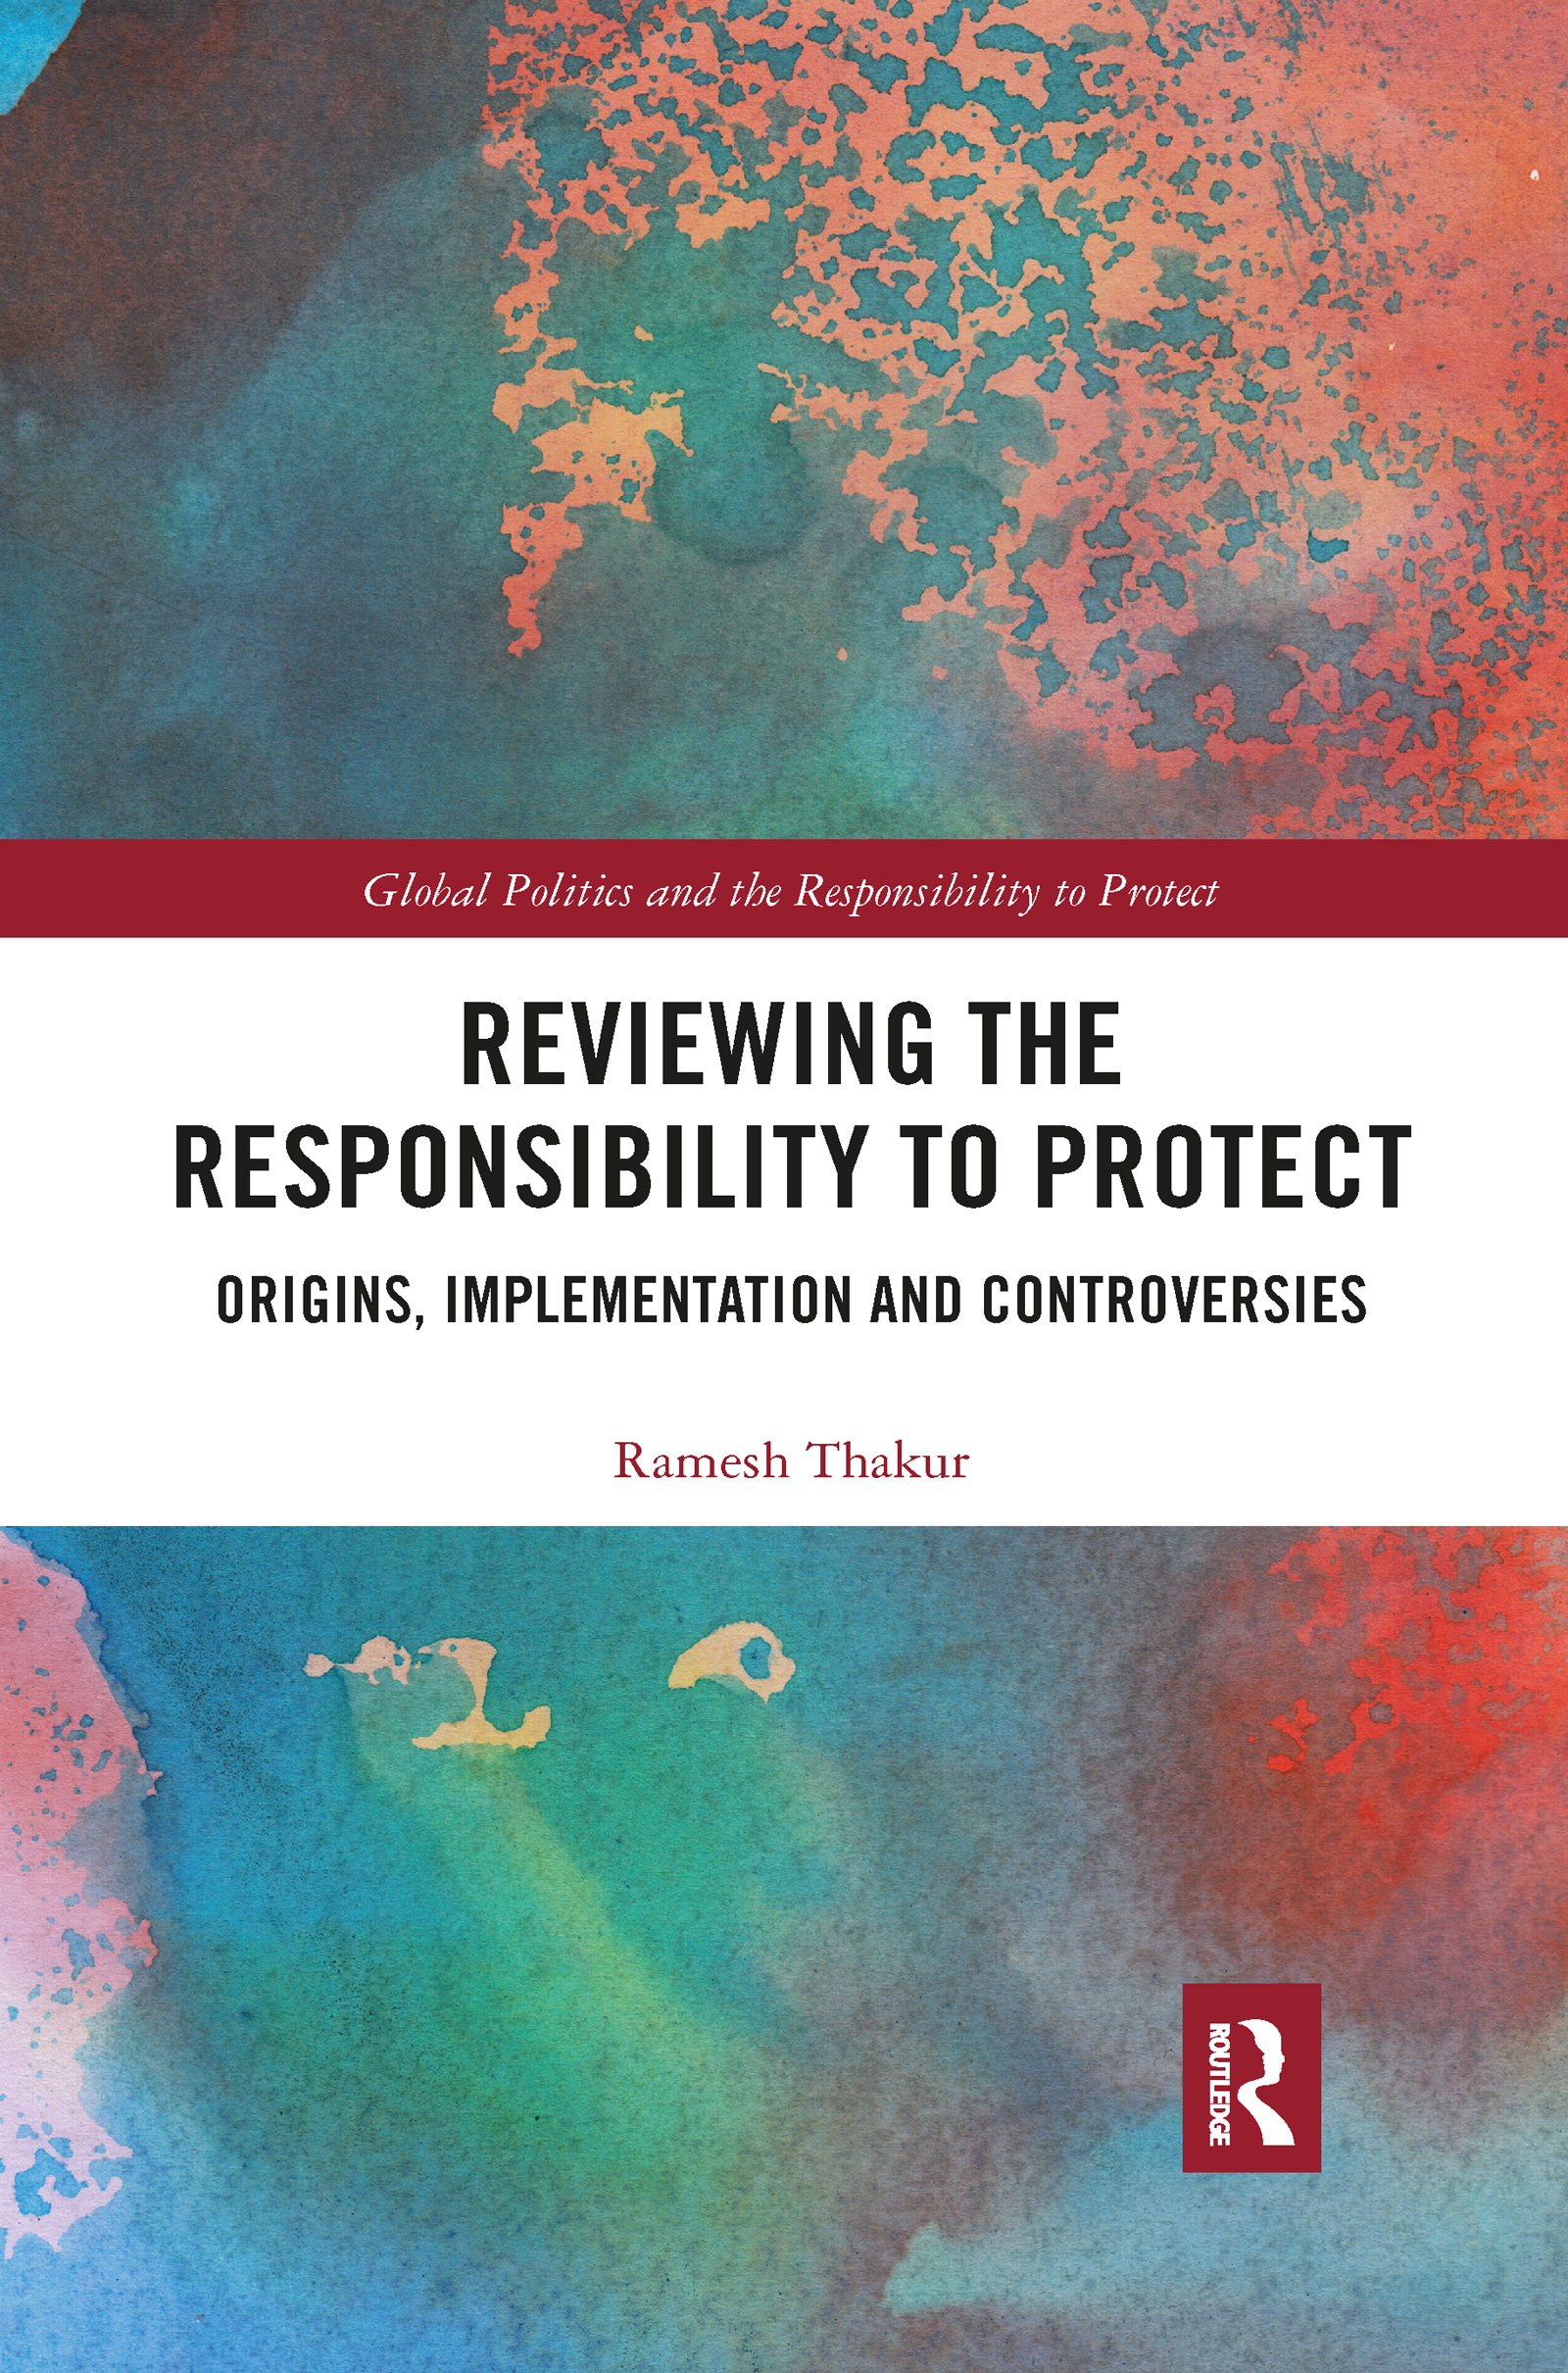 Reviewing the Responsibility to Protect